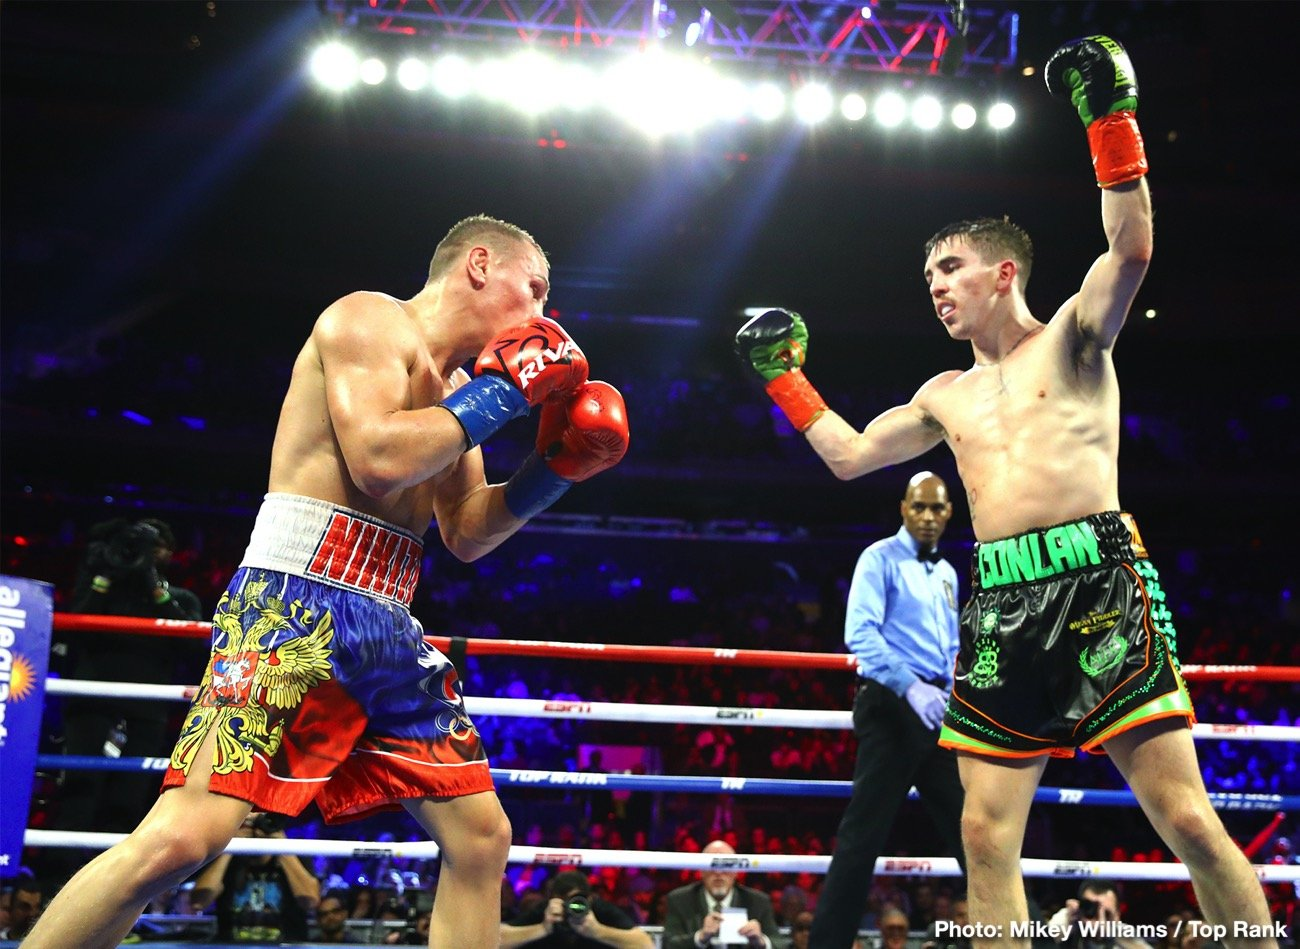 Emanuel Navarrete, Shakur Stevenson - Shakur Stevenson has given up his WBO featherweight strap, and Emanuel Navarrete will be moving up to 126 to fight for the vacant belt. Navarrete (31-0, 27 KOs) has already vacated his WBO 122-lb title so that he could move up to featherweight.